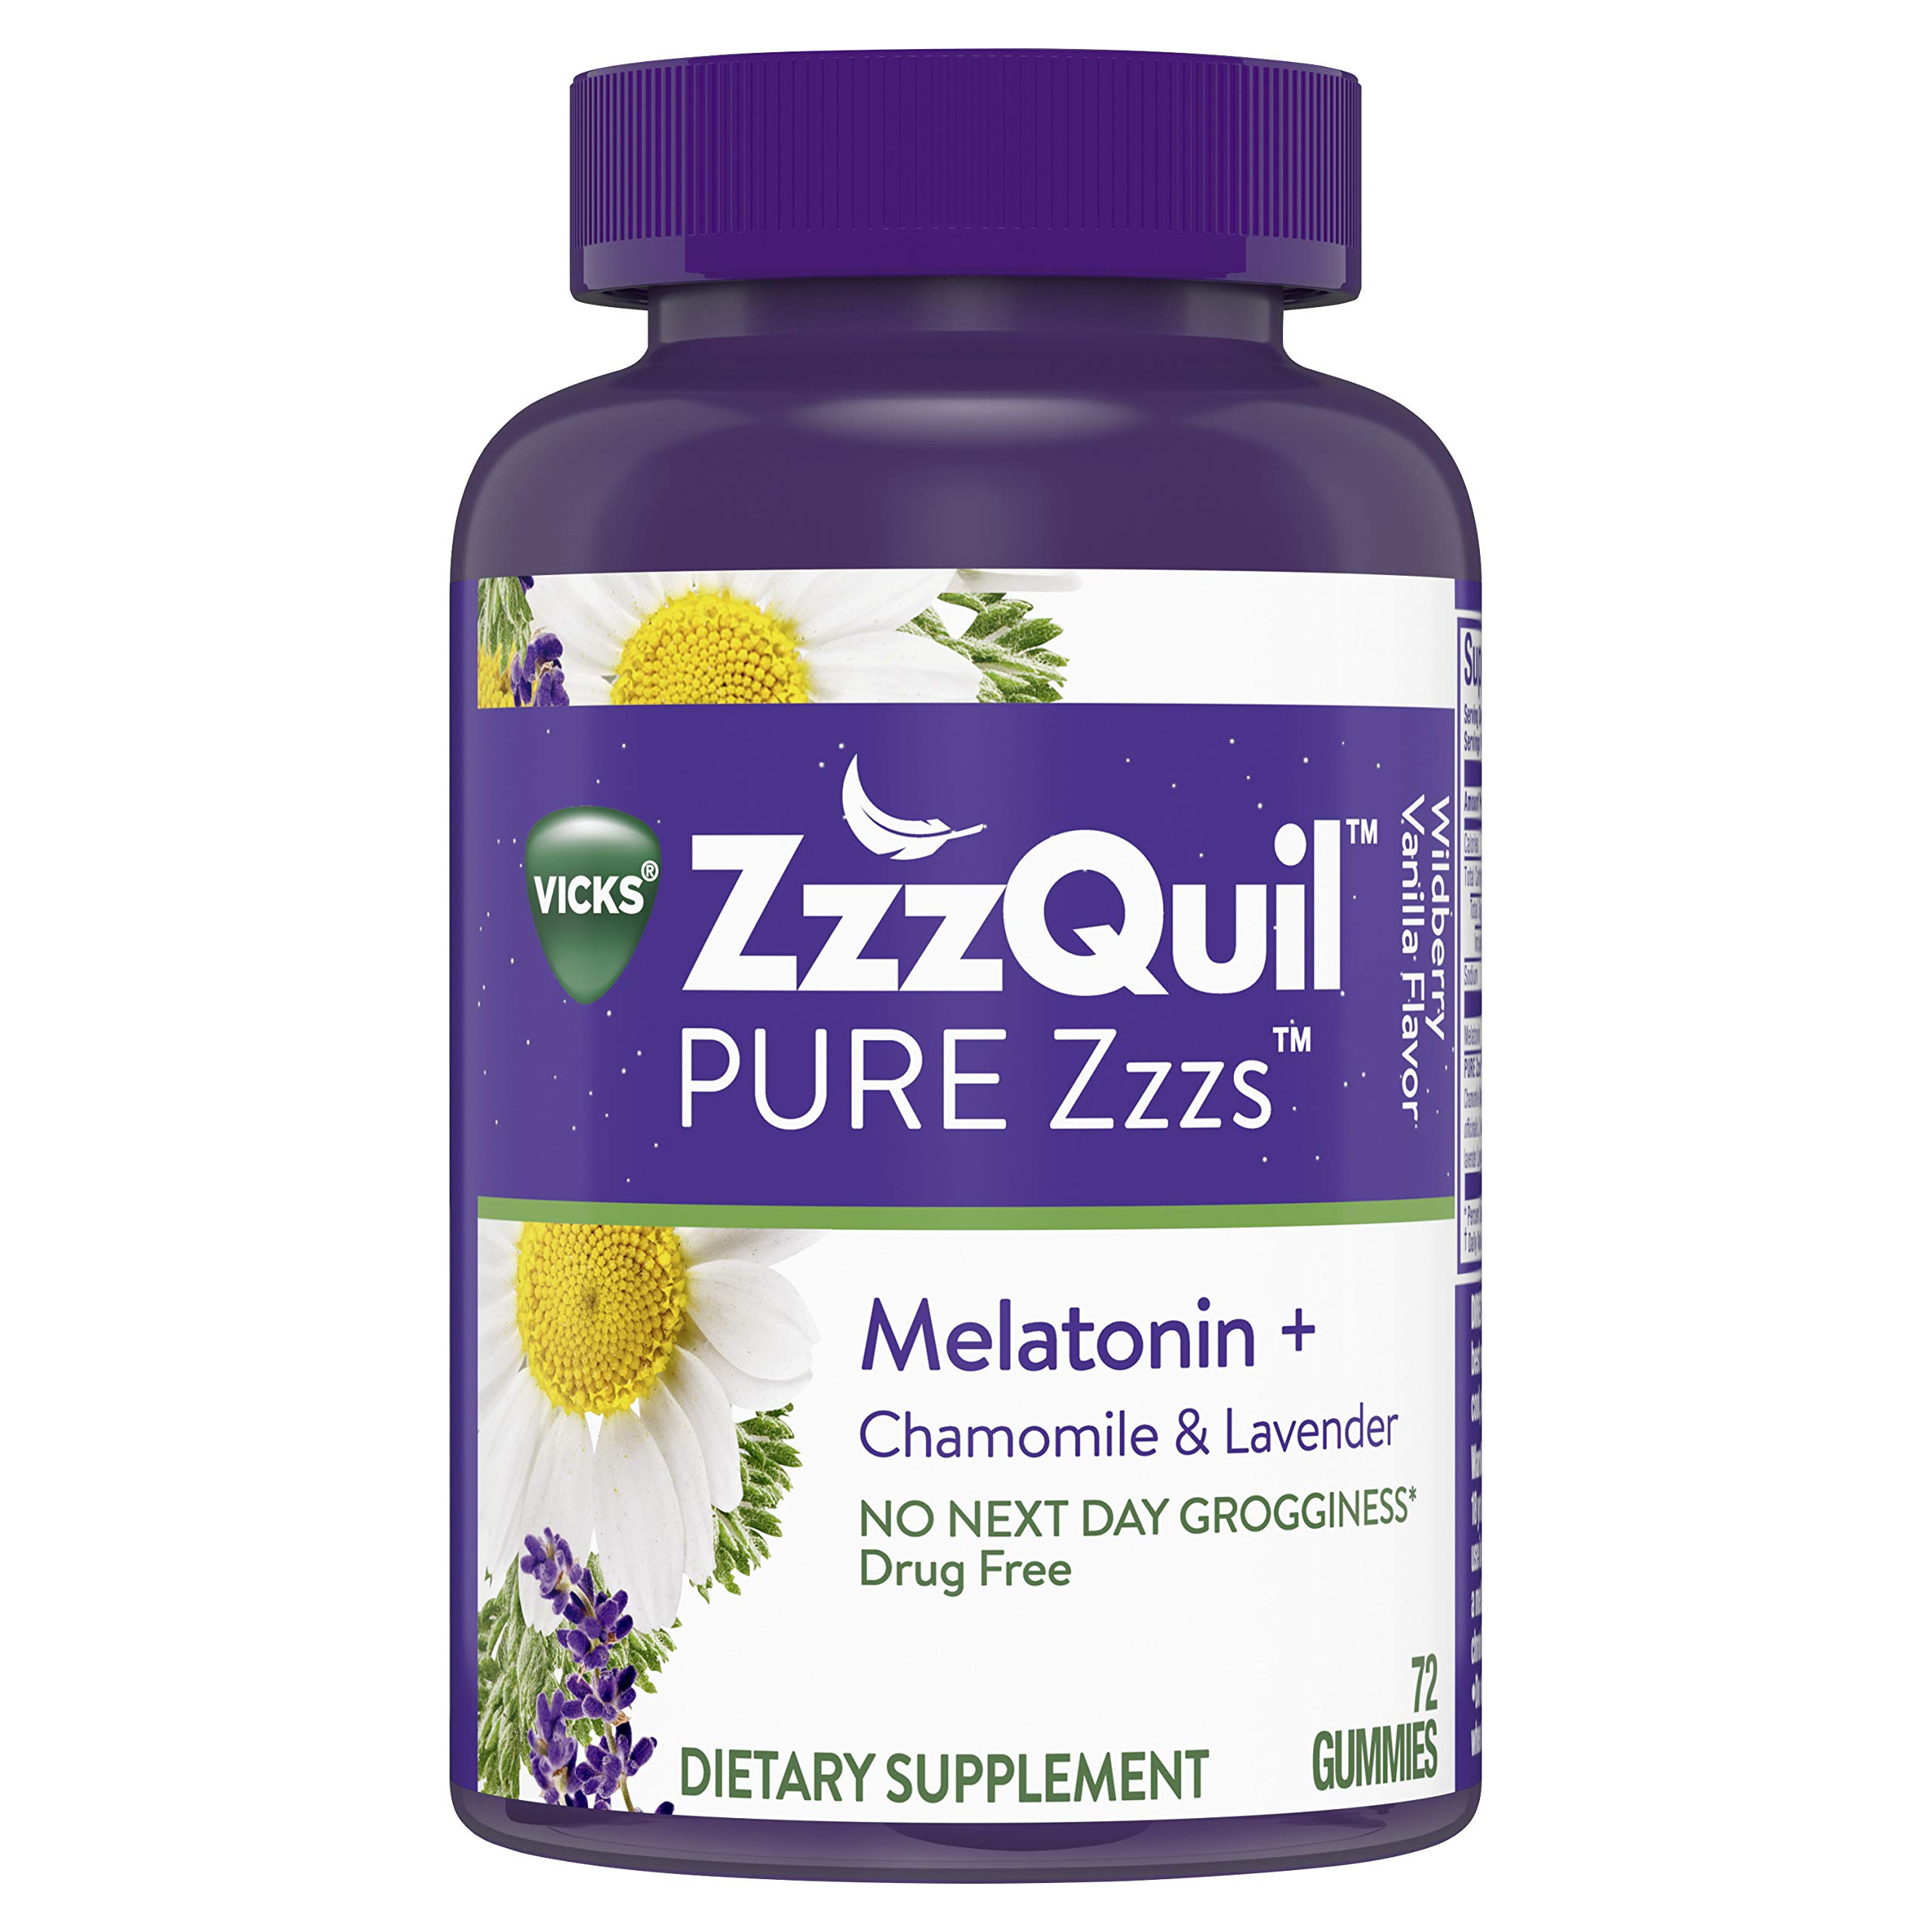 Amazon.com: Vicks ZzzQuil Pure Zzzs Melatonin Sleep Aid Gummies with Chamomile, Lavender and Valerian Root, Natural Flavor, 72 ct: Health & Personal Care